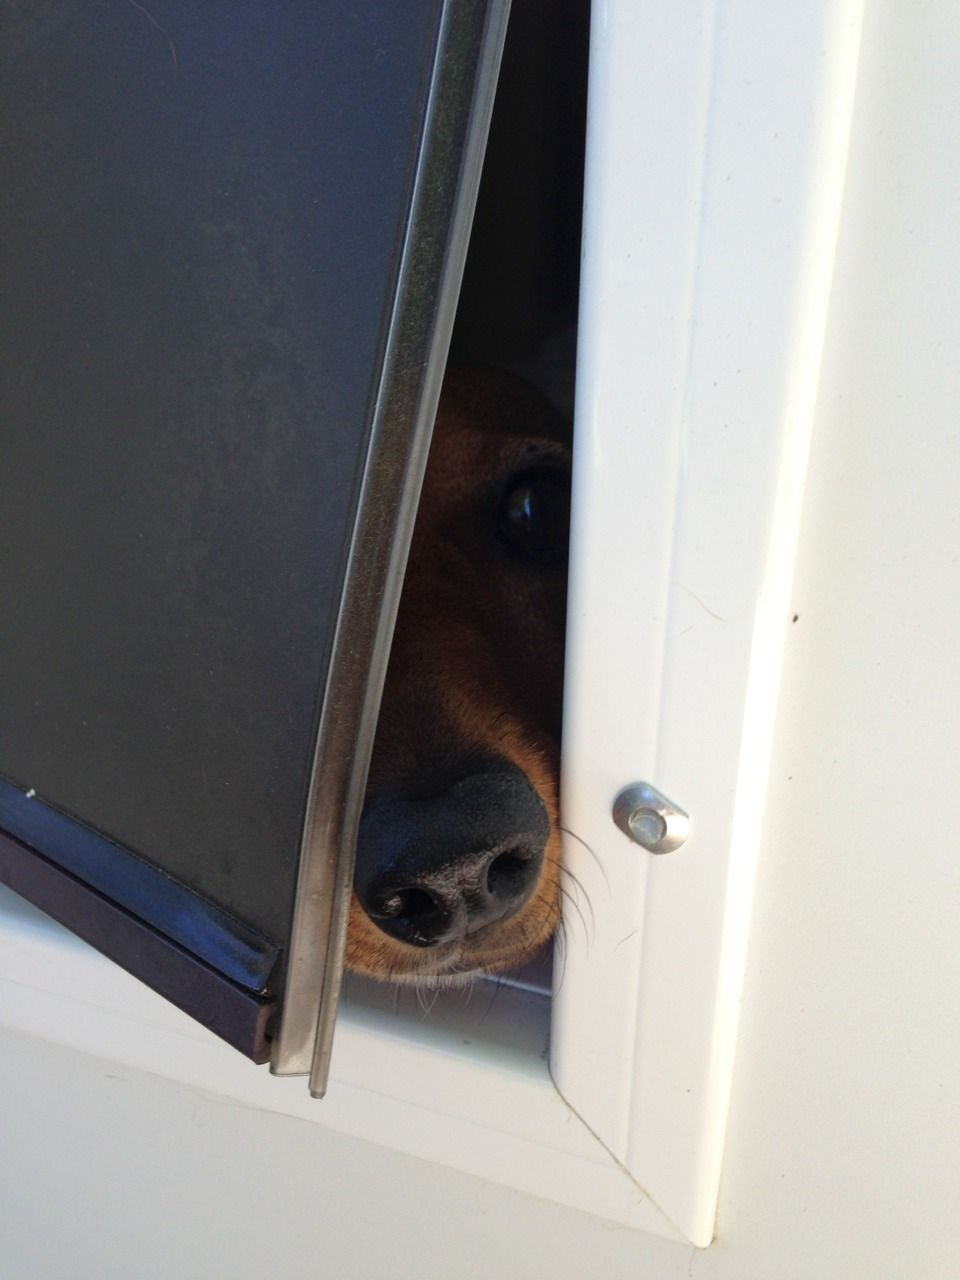 Can I come outside